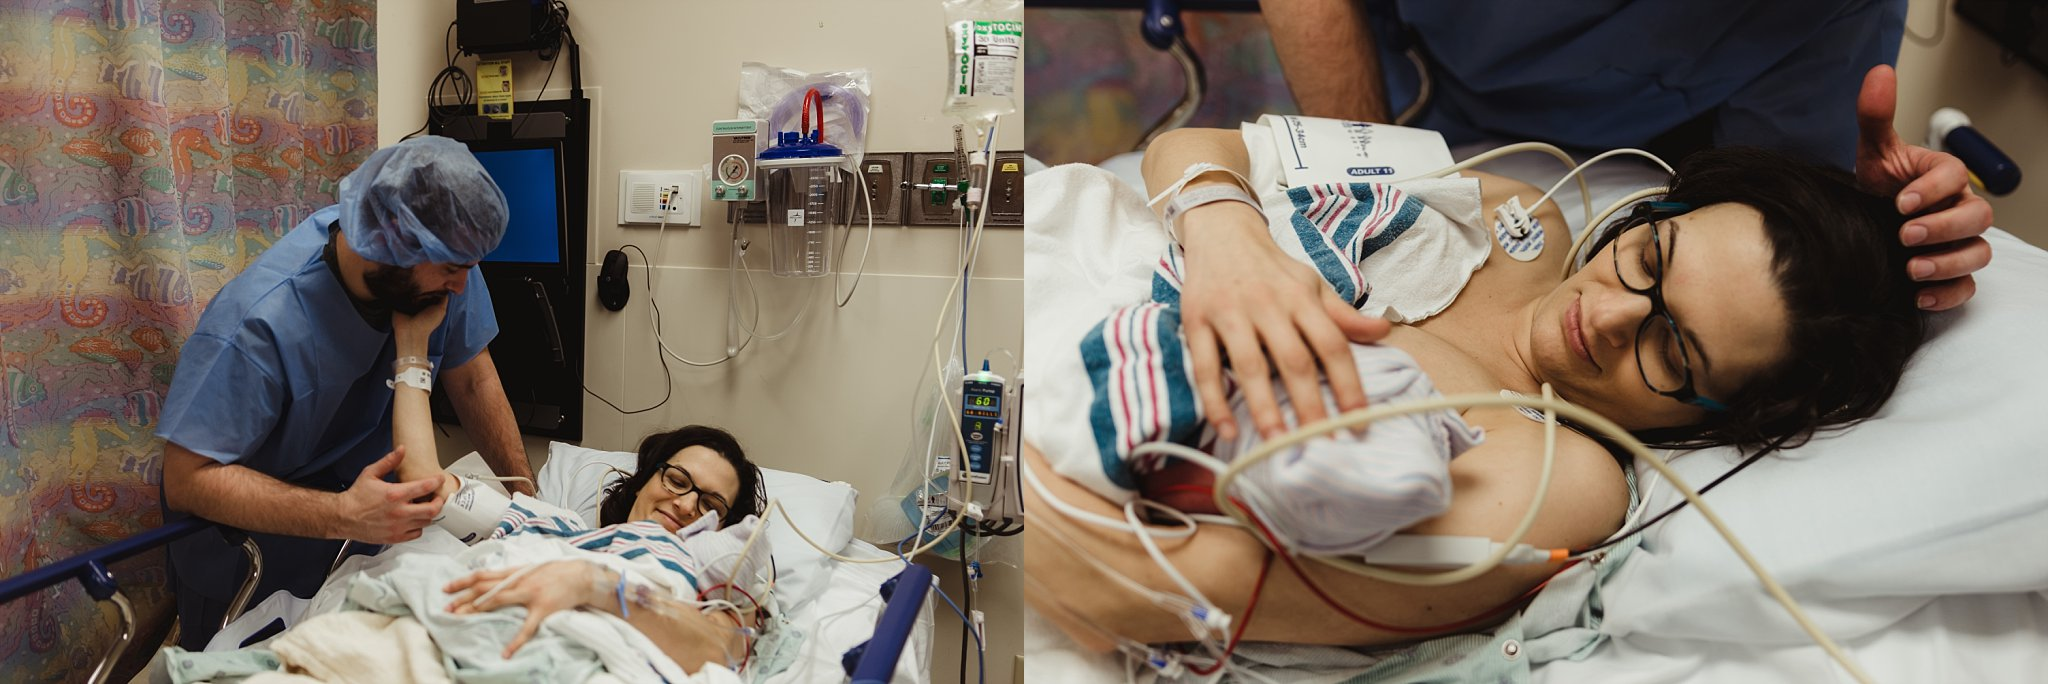 Dad caresses mom in recovery with their preemie.